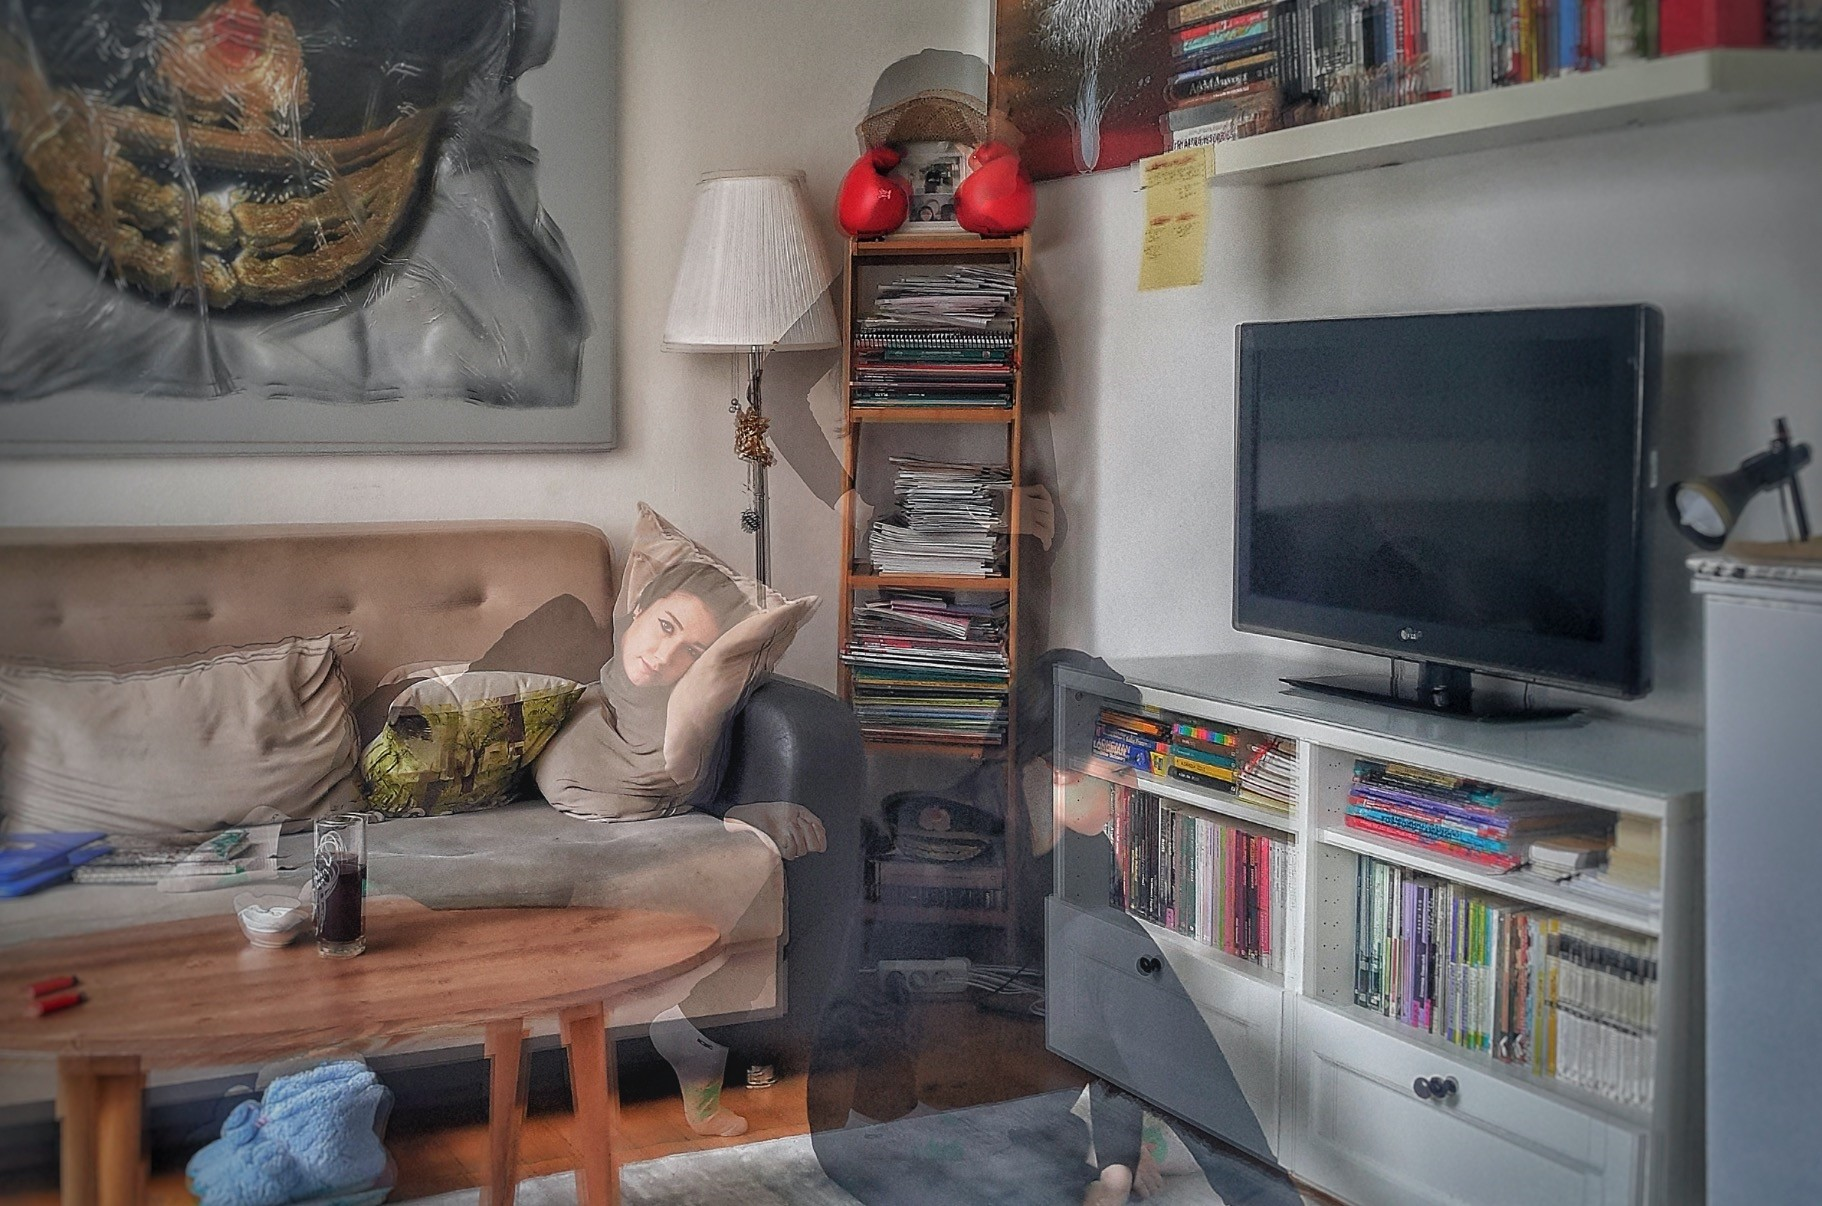 In u201cThe Fourth Wall,u201d Ebru Sargu0131n live streams from her house and turns the relationship between the viewer, who is in the act of seeing, and the artist being gazed upon, upside down.